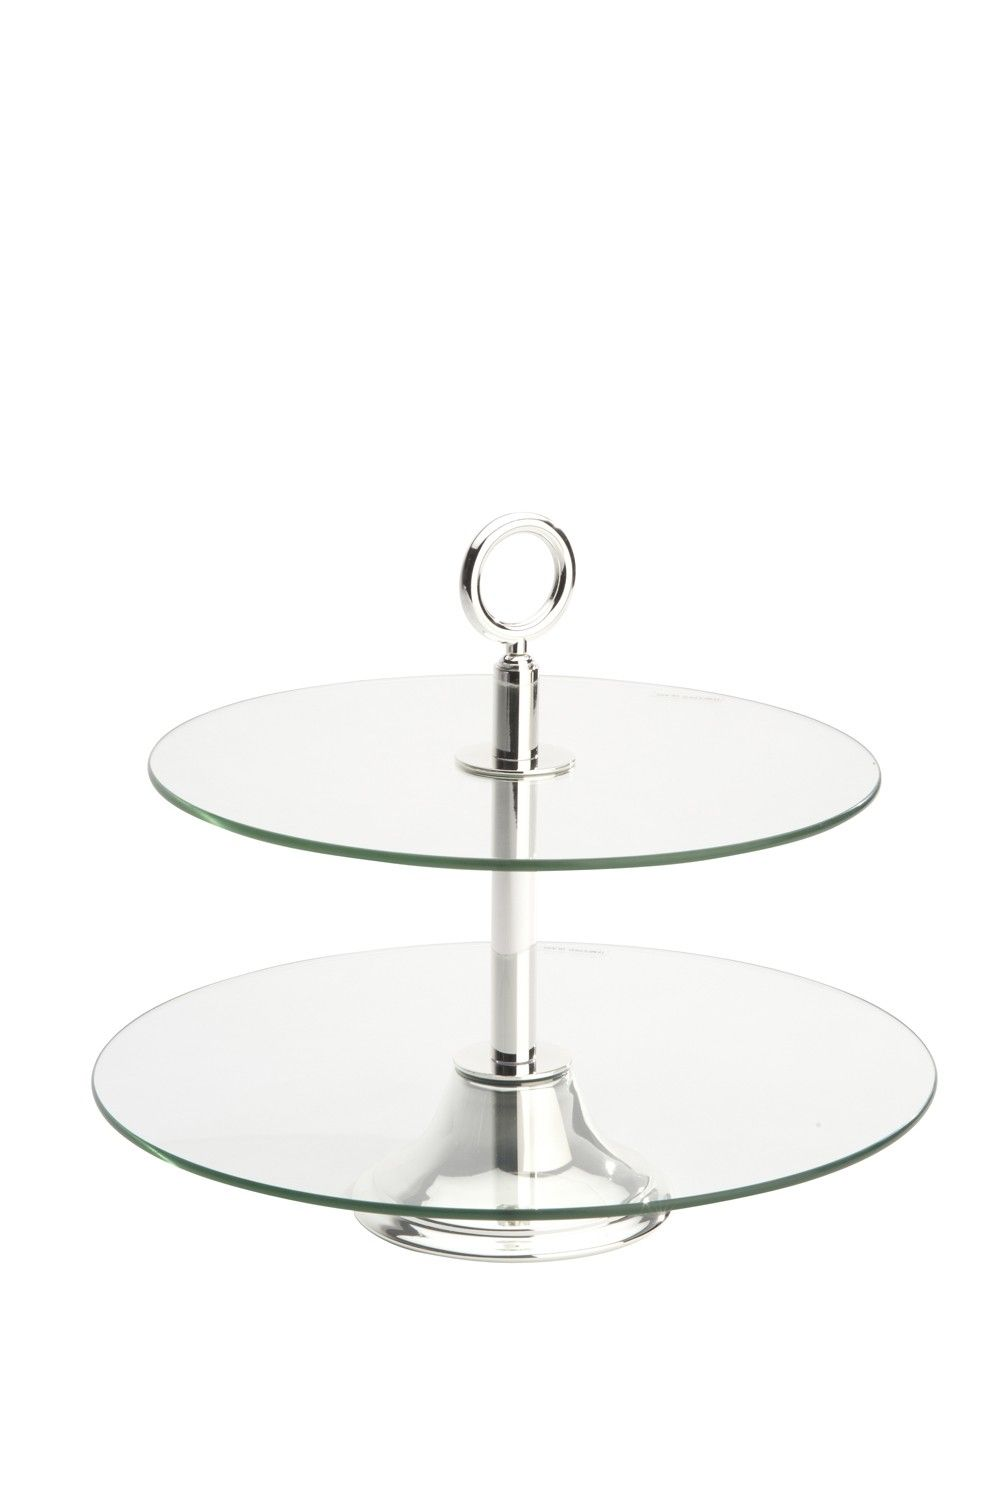 Serving Stand Celeste Round 2 Tier Zilverstad Brands With Images Serving Stand Tiered Cake Stand Tiered